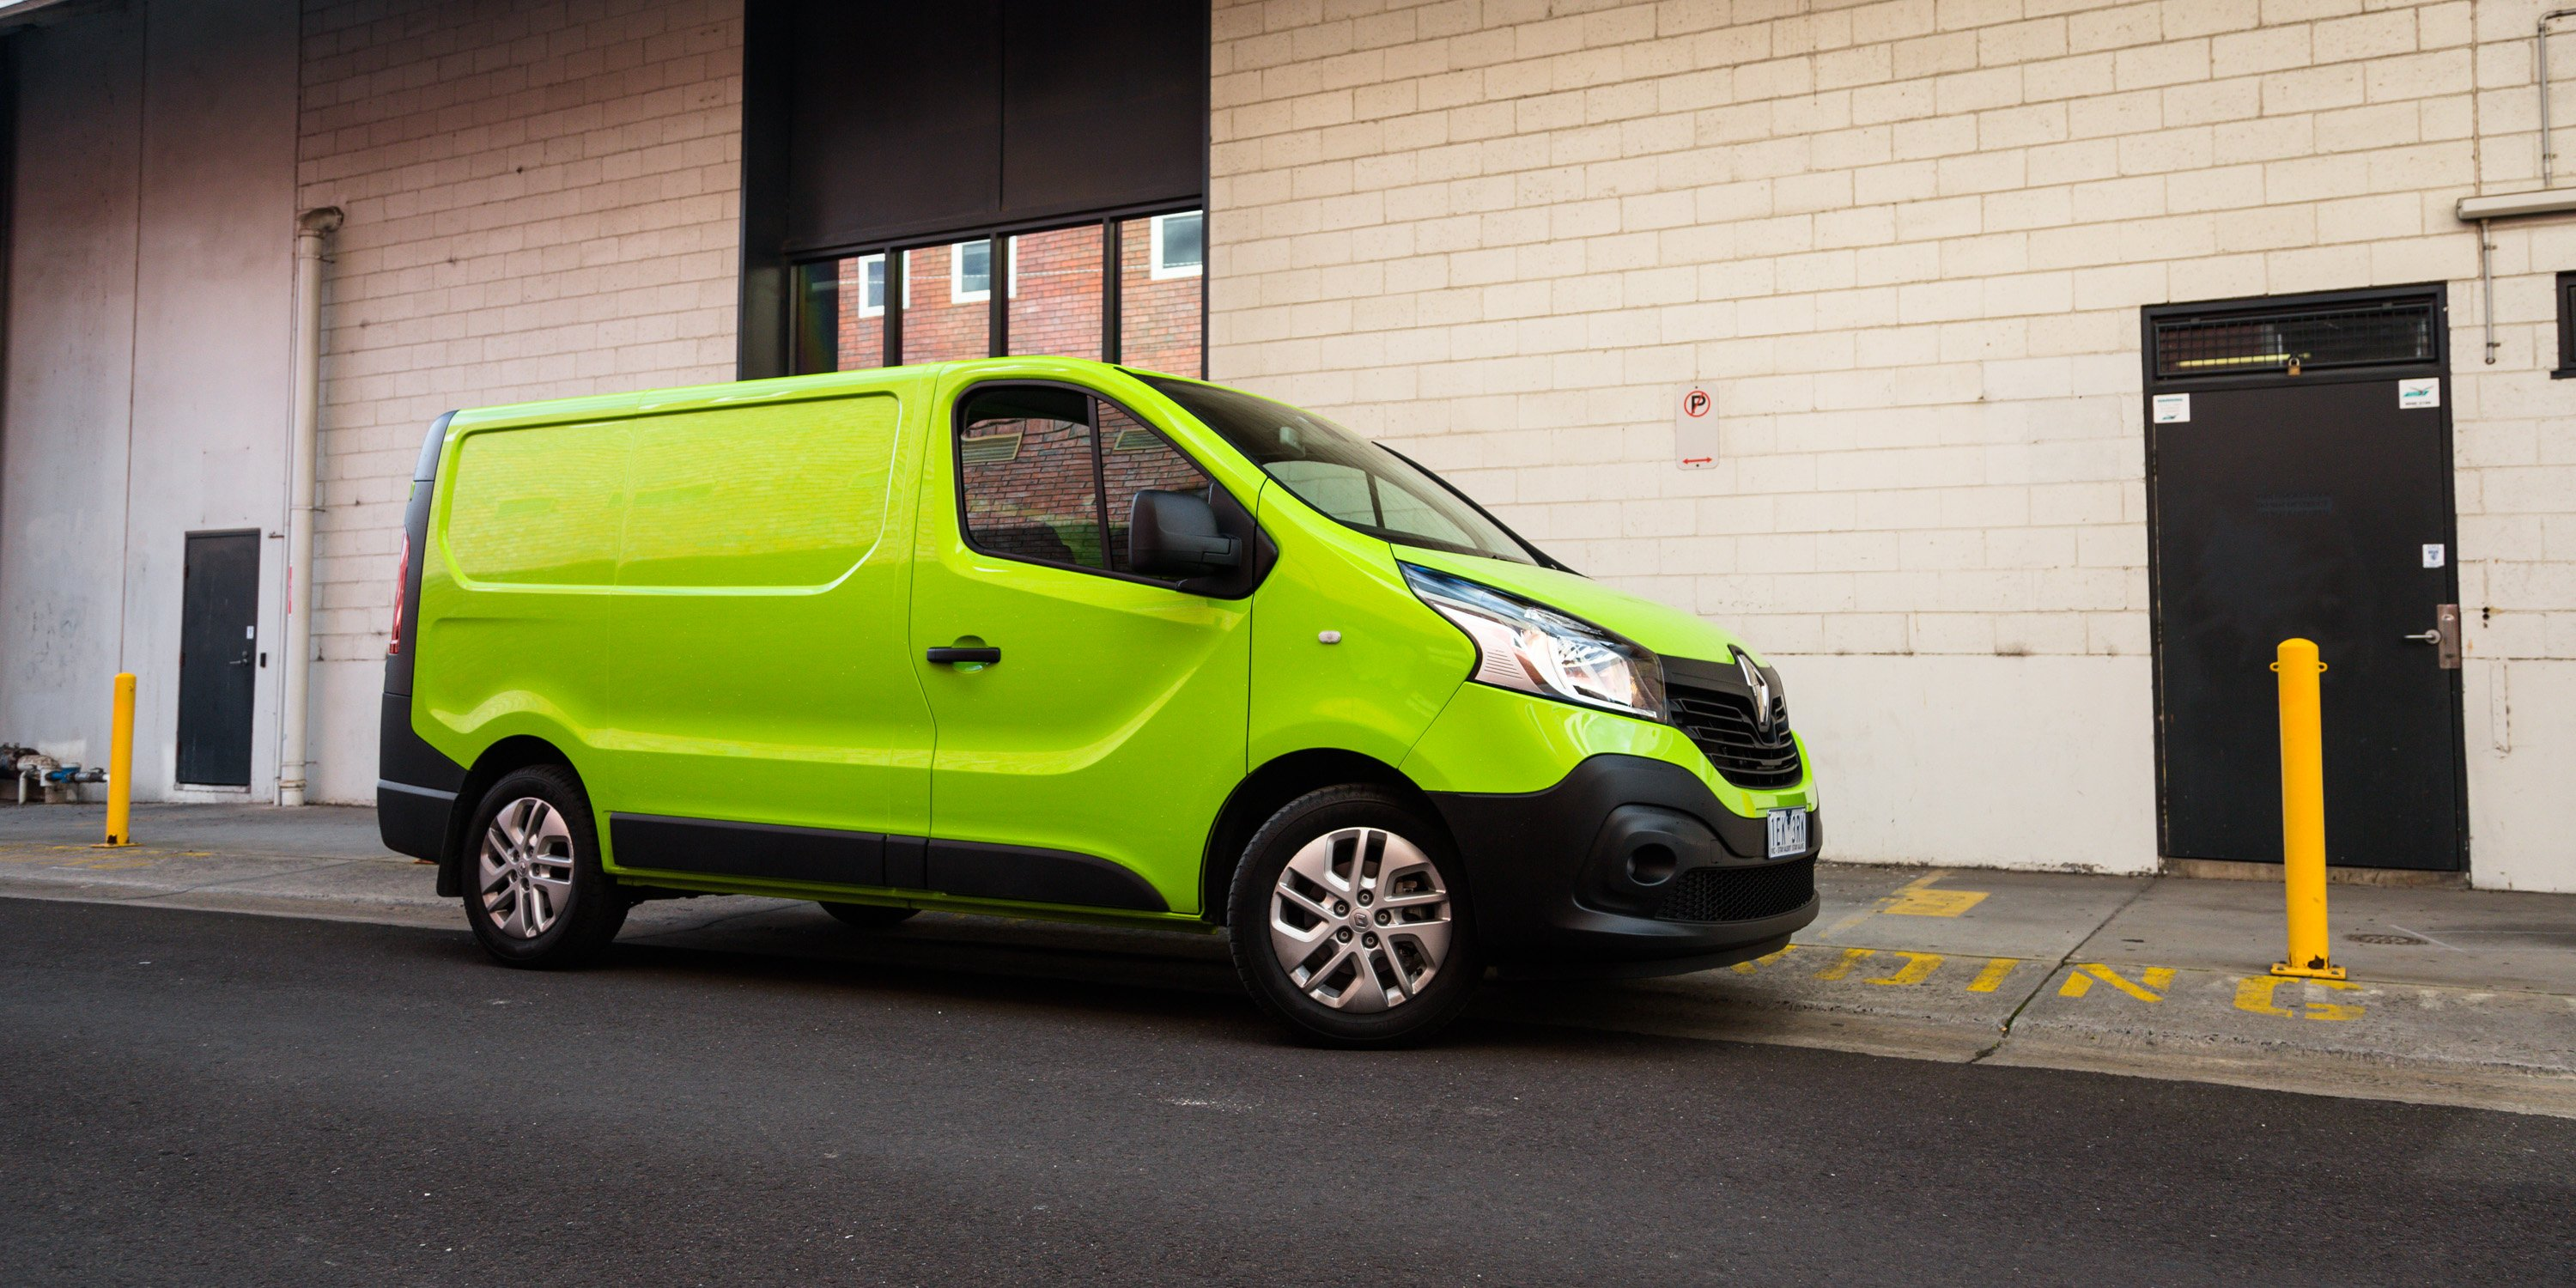 2015 Renault Trafic L1h1 Twin Turbo Review Photos